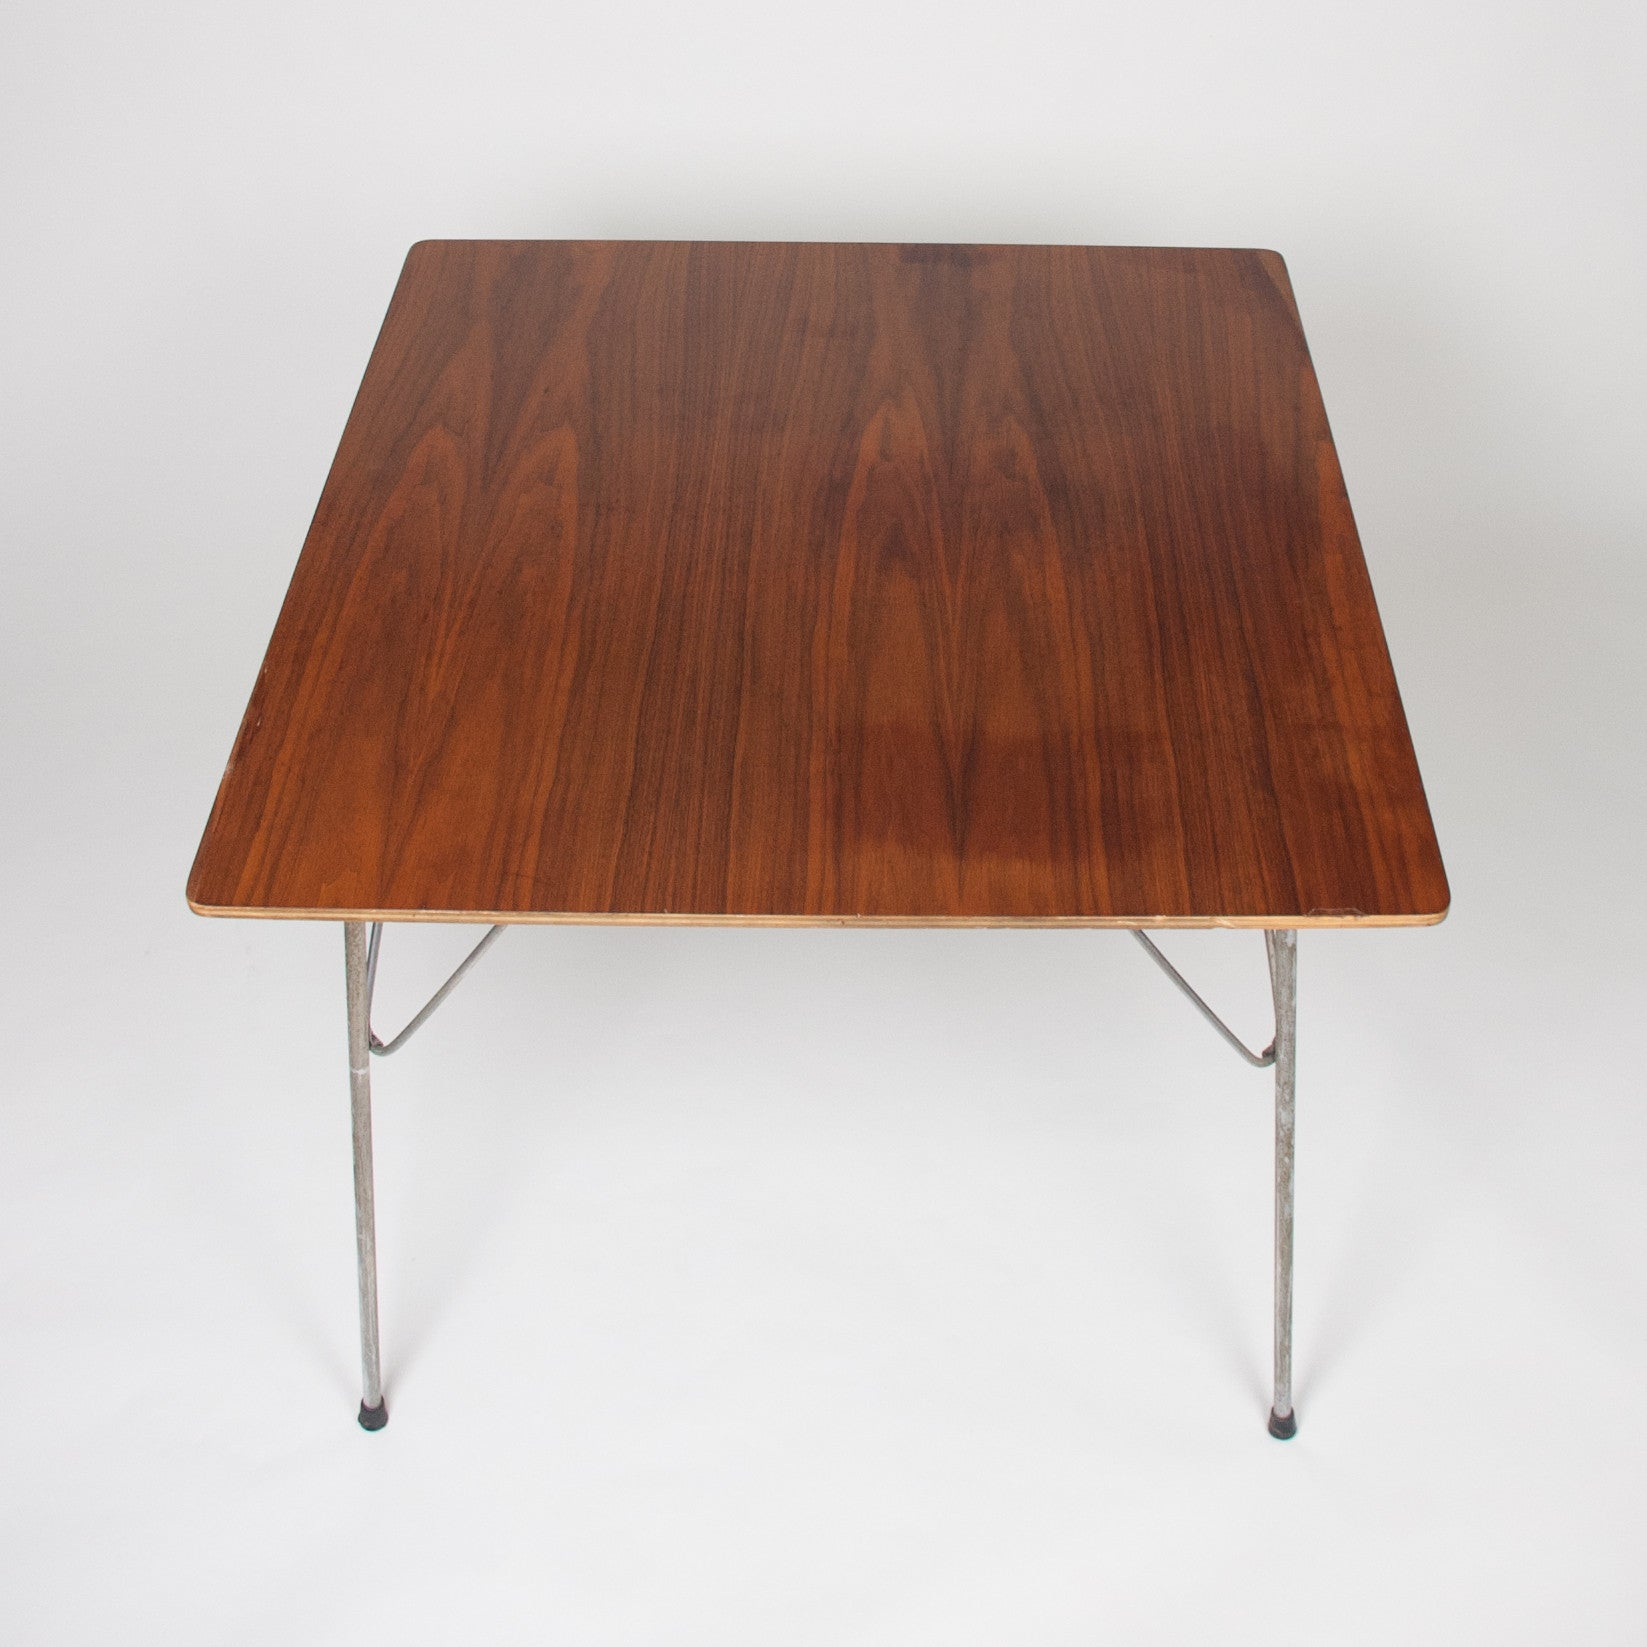 SOLD Early Eames Herman Miller Folding DTM 2 Square Dining Table